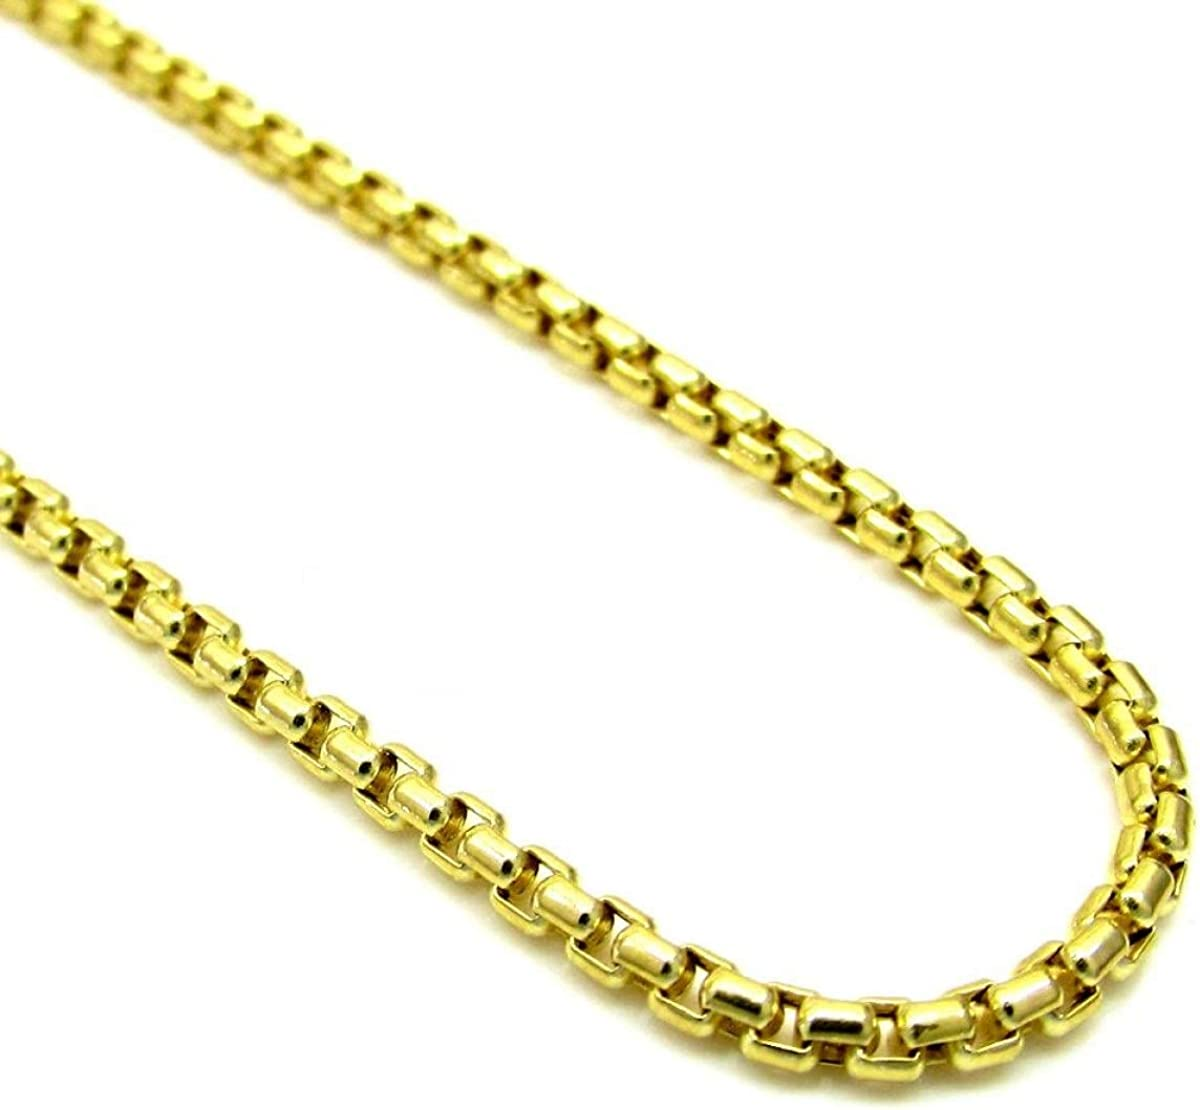 Solid 925 Necklace Chain Sterling Silver Italian 3.5mm Round Box Link 18K Yellow Gold Plated Heavy-Weight 24-36/""